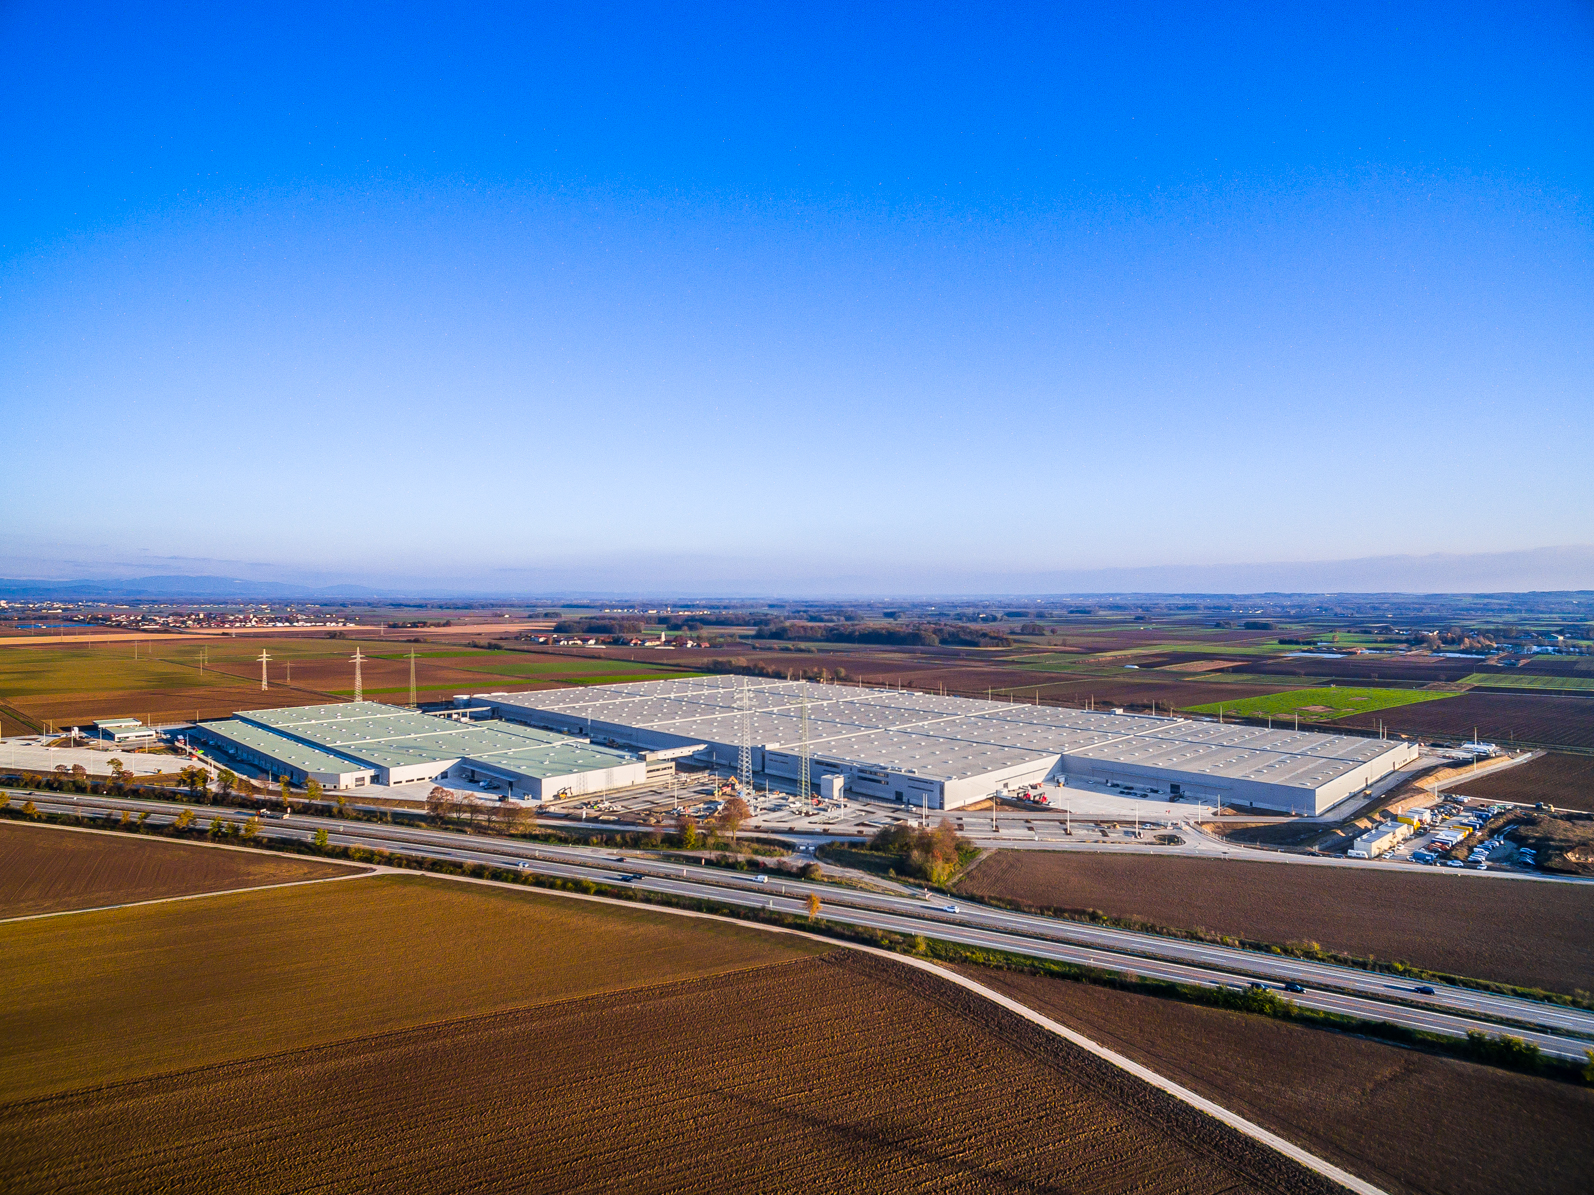 bmw-logistikzentrum-dibag-wallersdorf-27